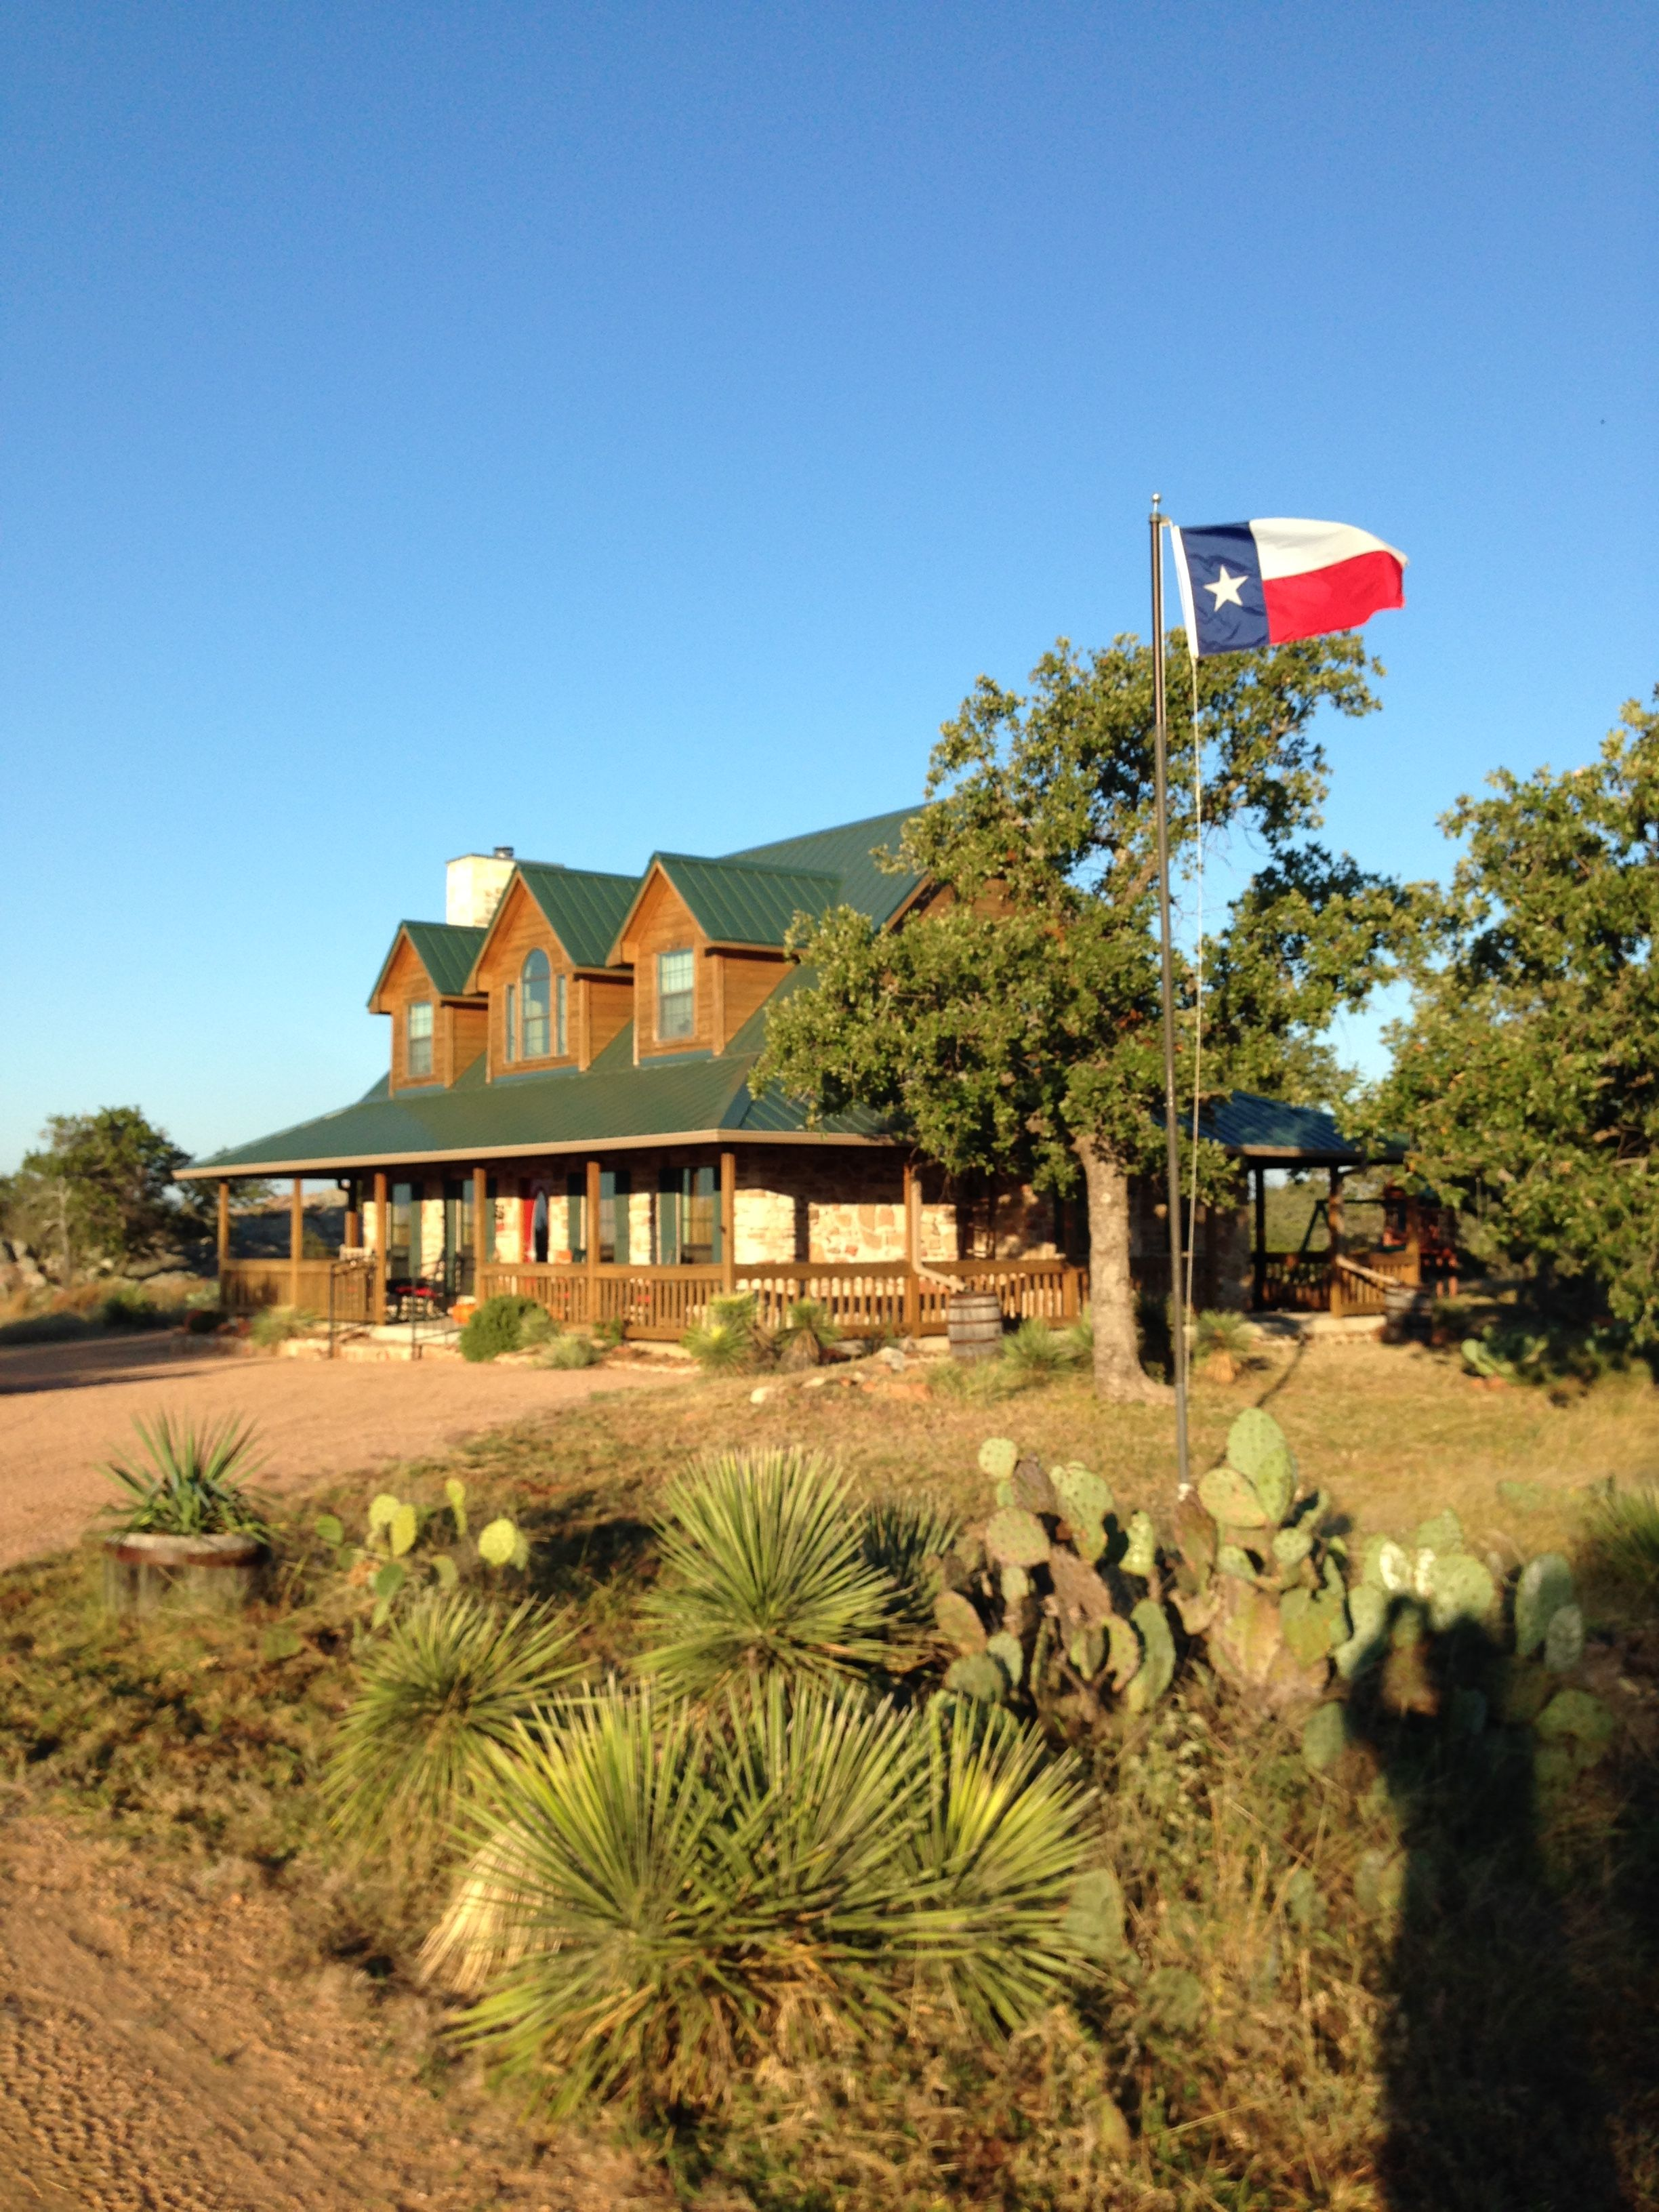 Our favorite place in Texas!!